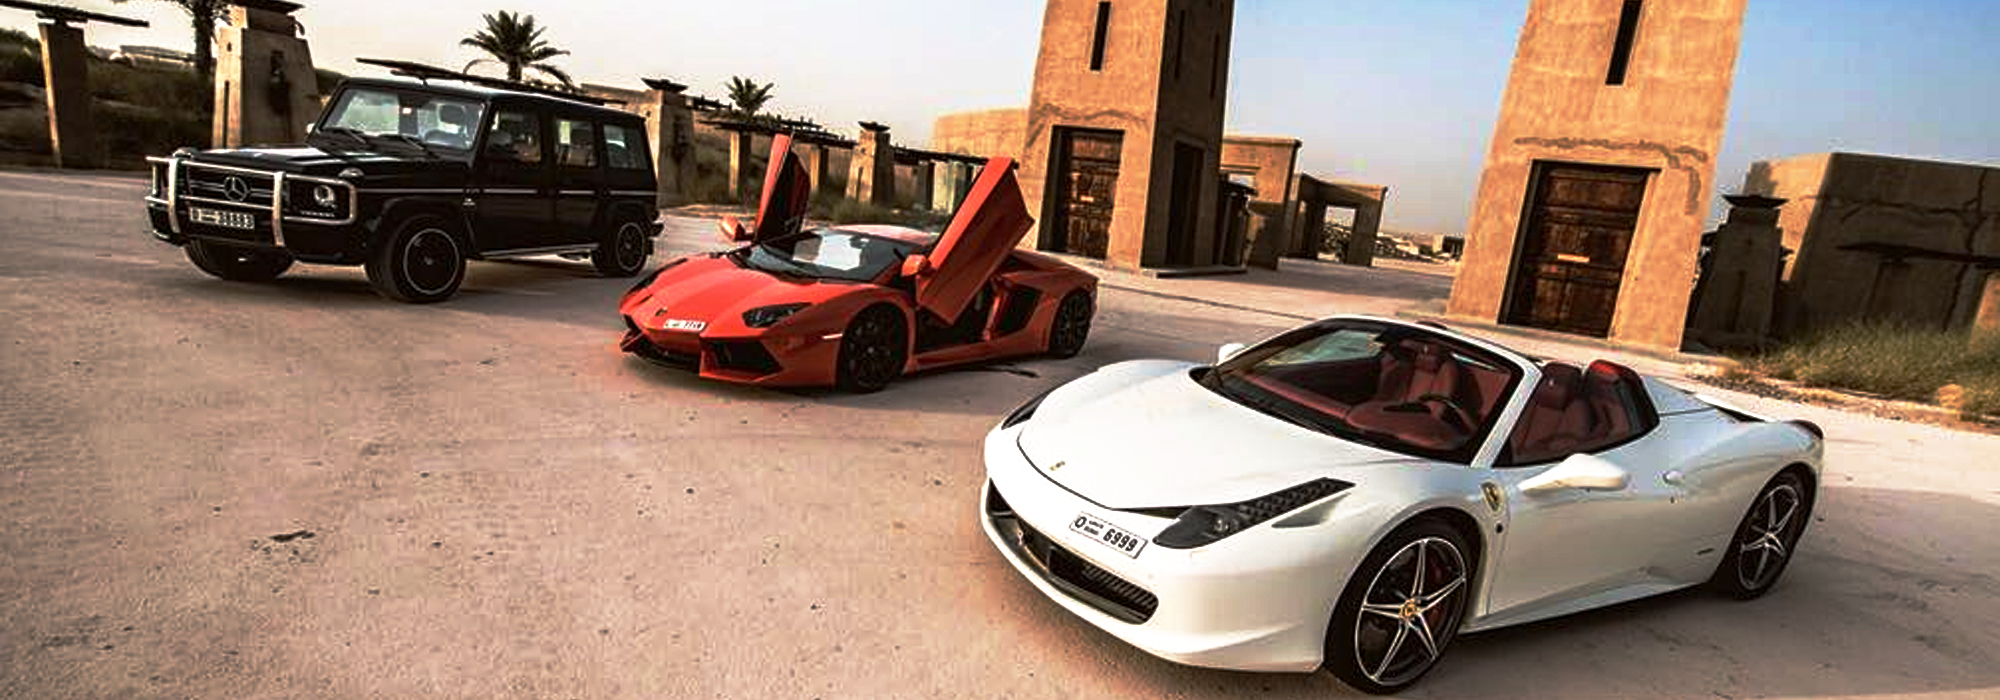 Masterkey Luxury Car Rental Dubai Uae